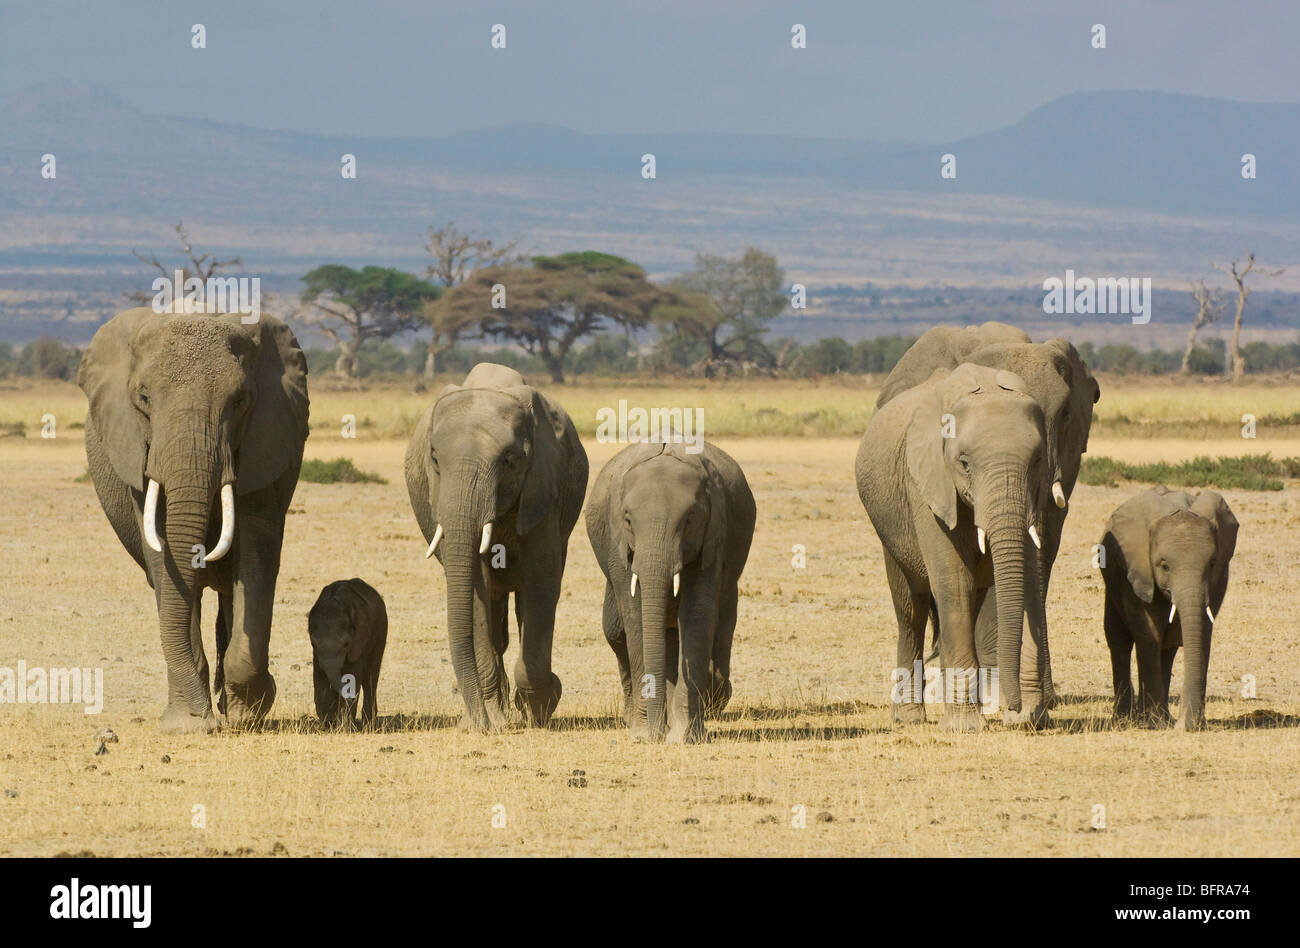 A family of elephants moves across the open grasslands of Amboseli - Stock Image